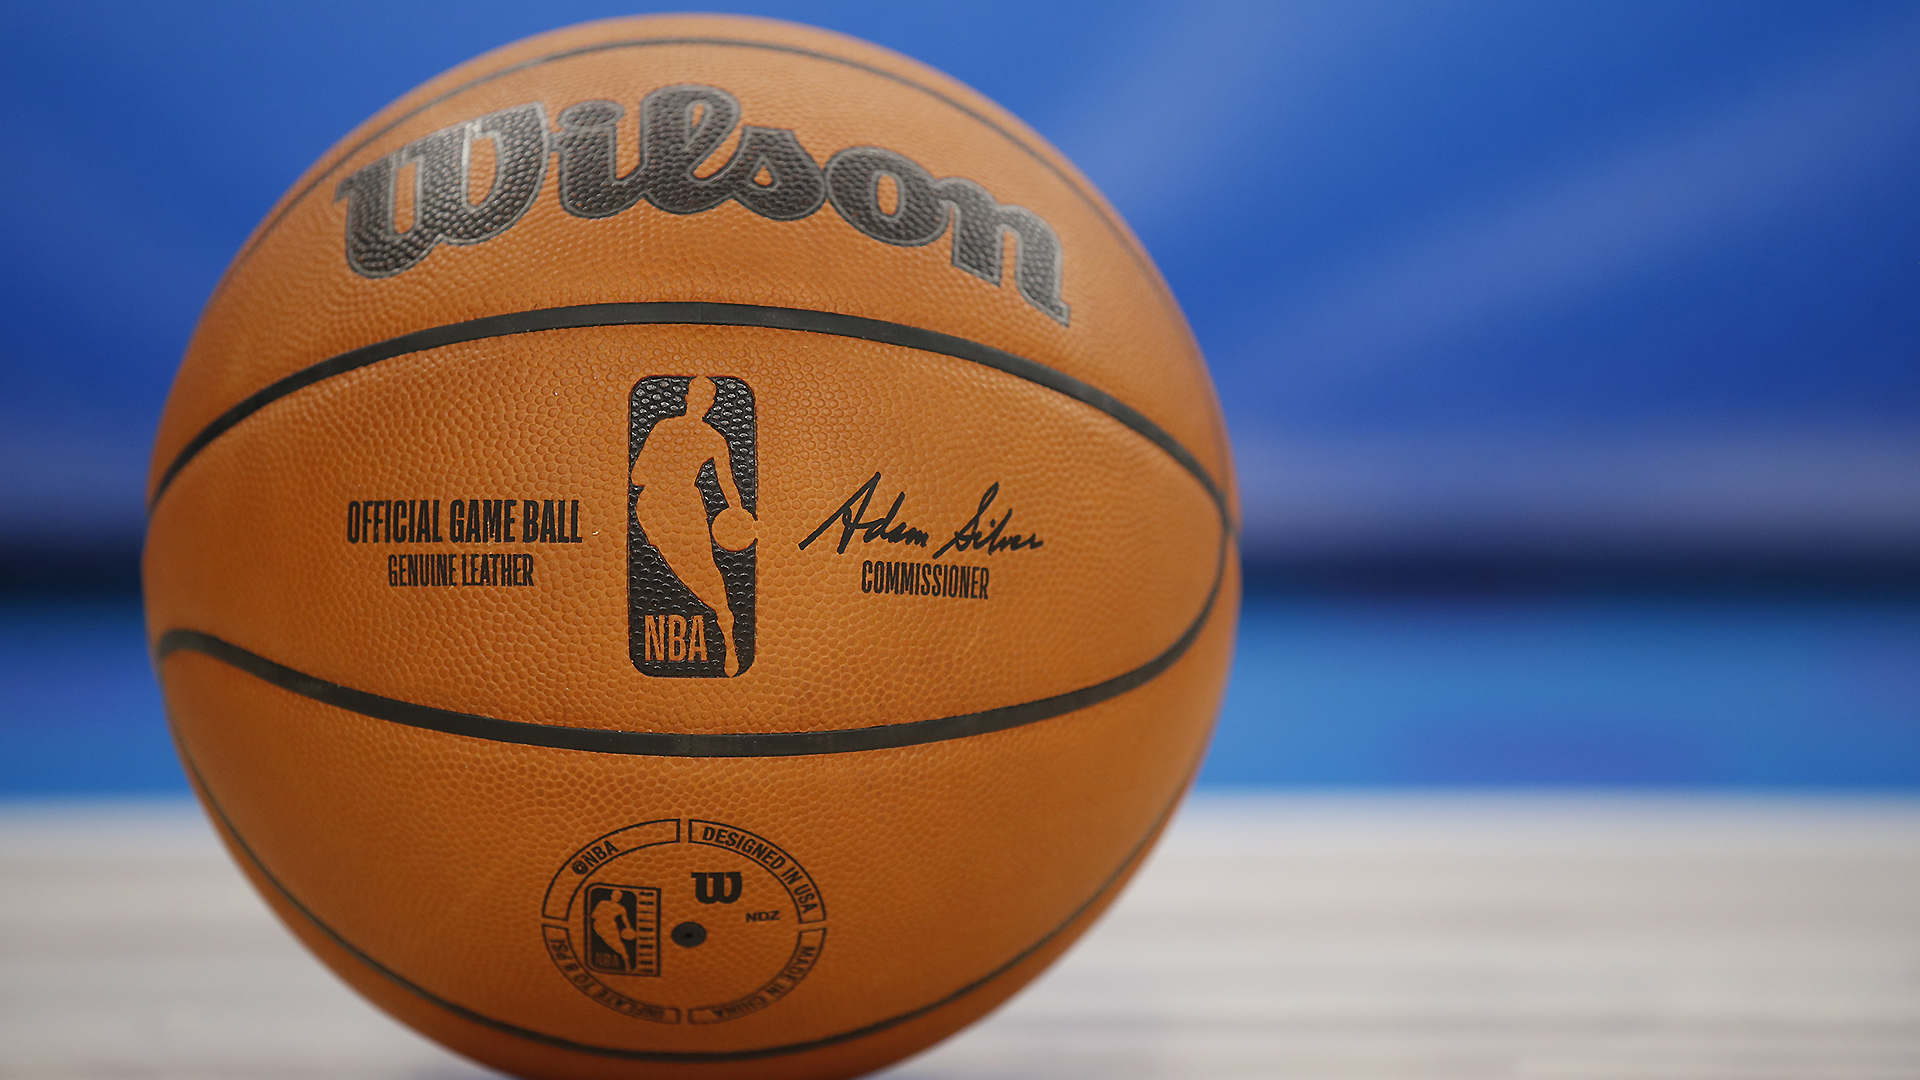 NBA announces required vaccinations for referees